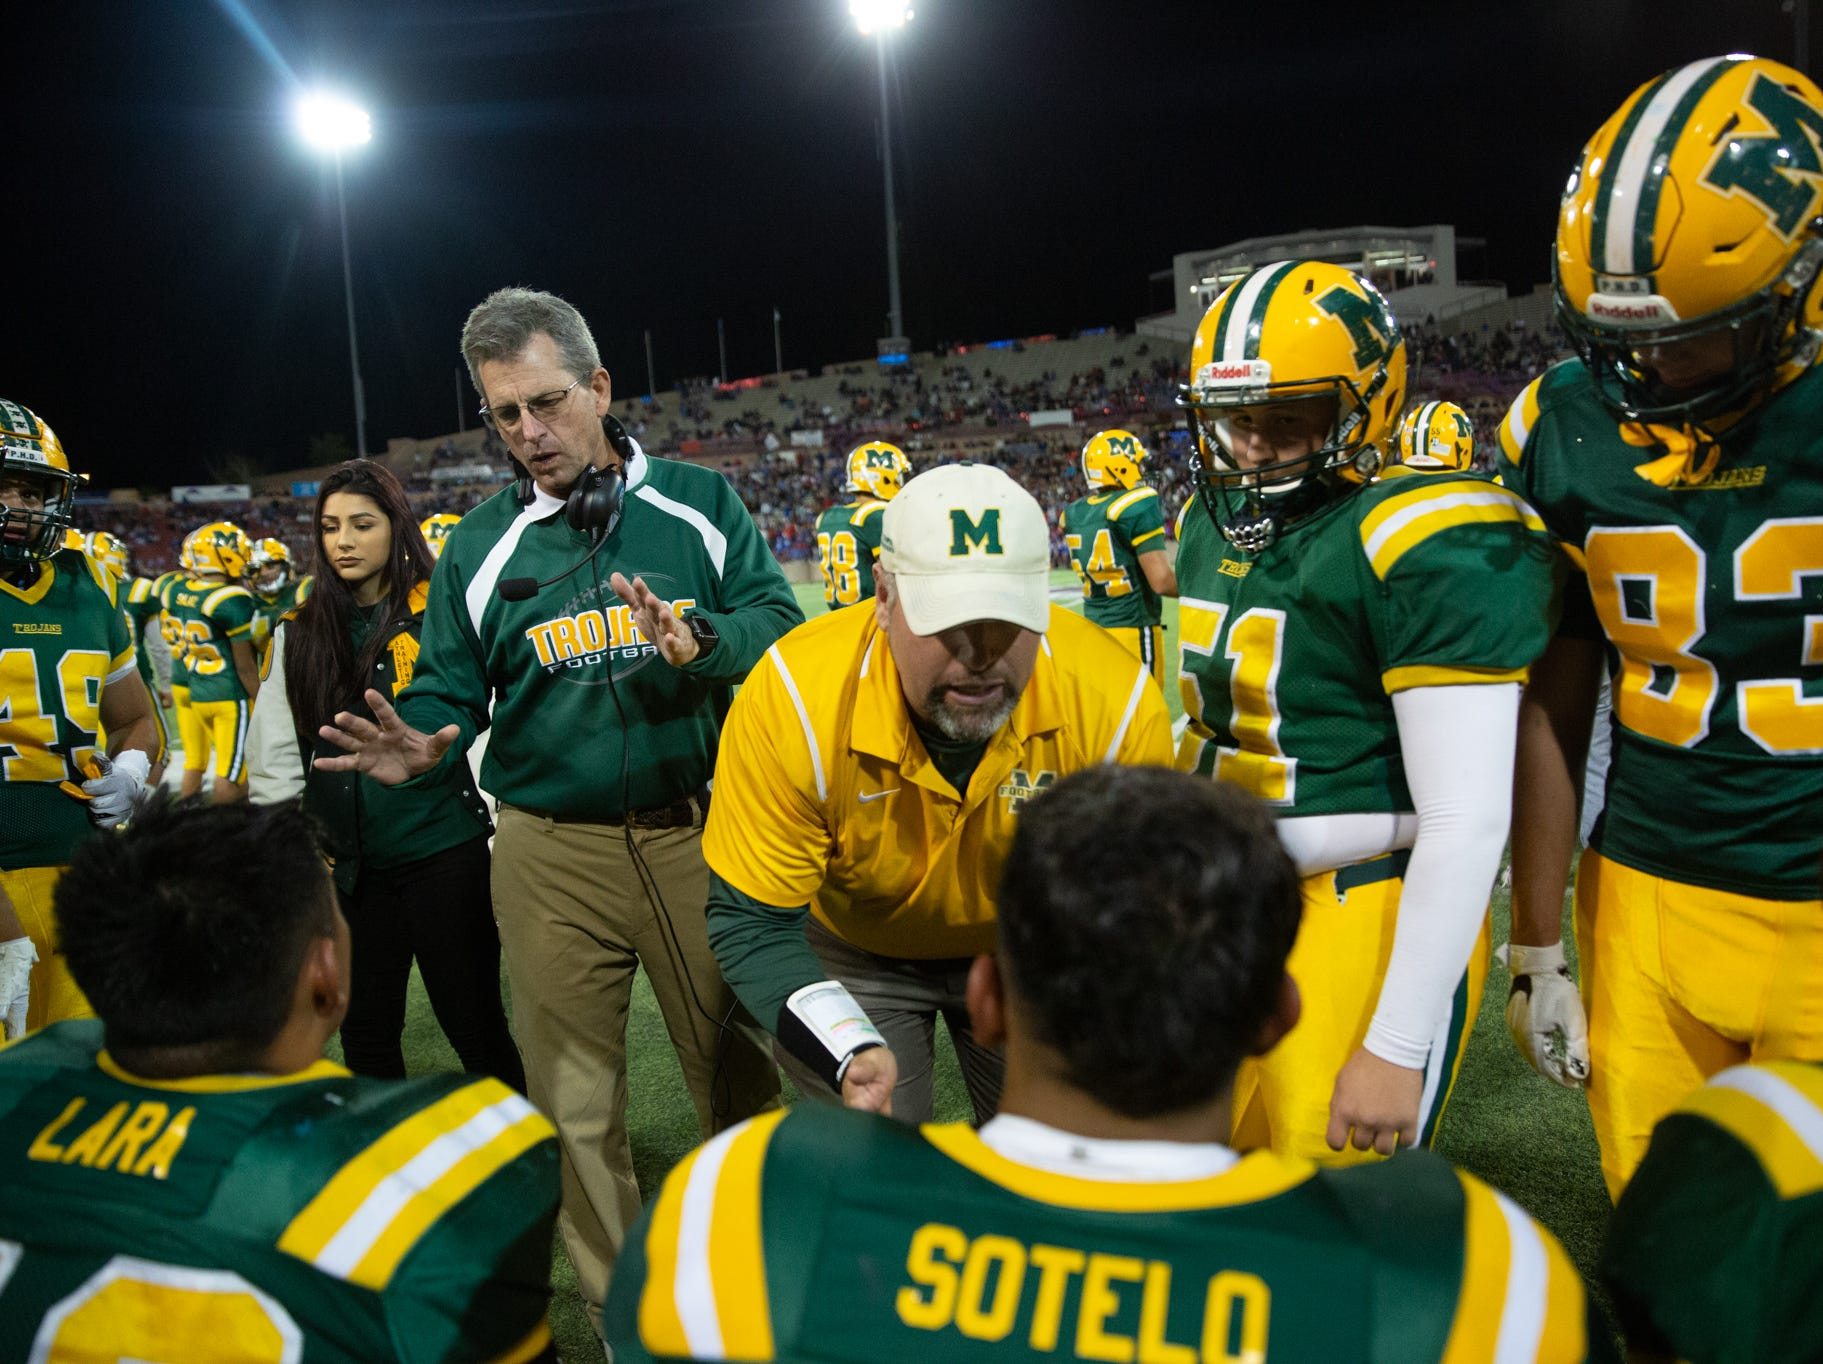 Mayfileld High School Head Coach Michael Bradley works with his coaching staff and players on the sideline during the Cruces/Mayfield football game on Friday, Nov. 2, 2018, at Aggie Memorial Stadium.